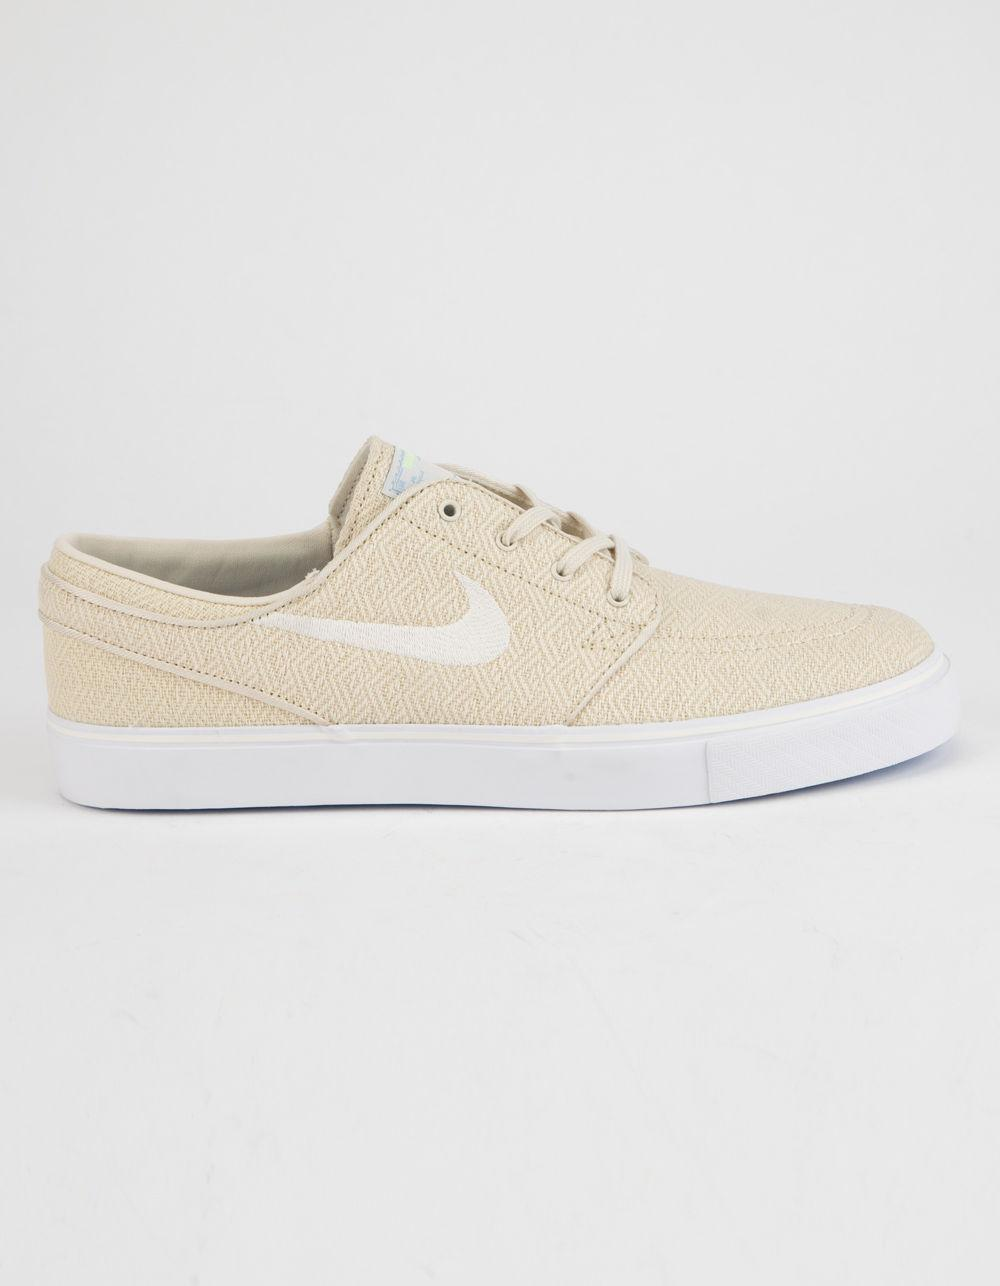 Lyst - Nike Zoom Stefan Janoski Canvas Fossil   Sail White Mens ... 233eecb2b5393